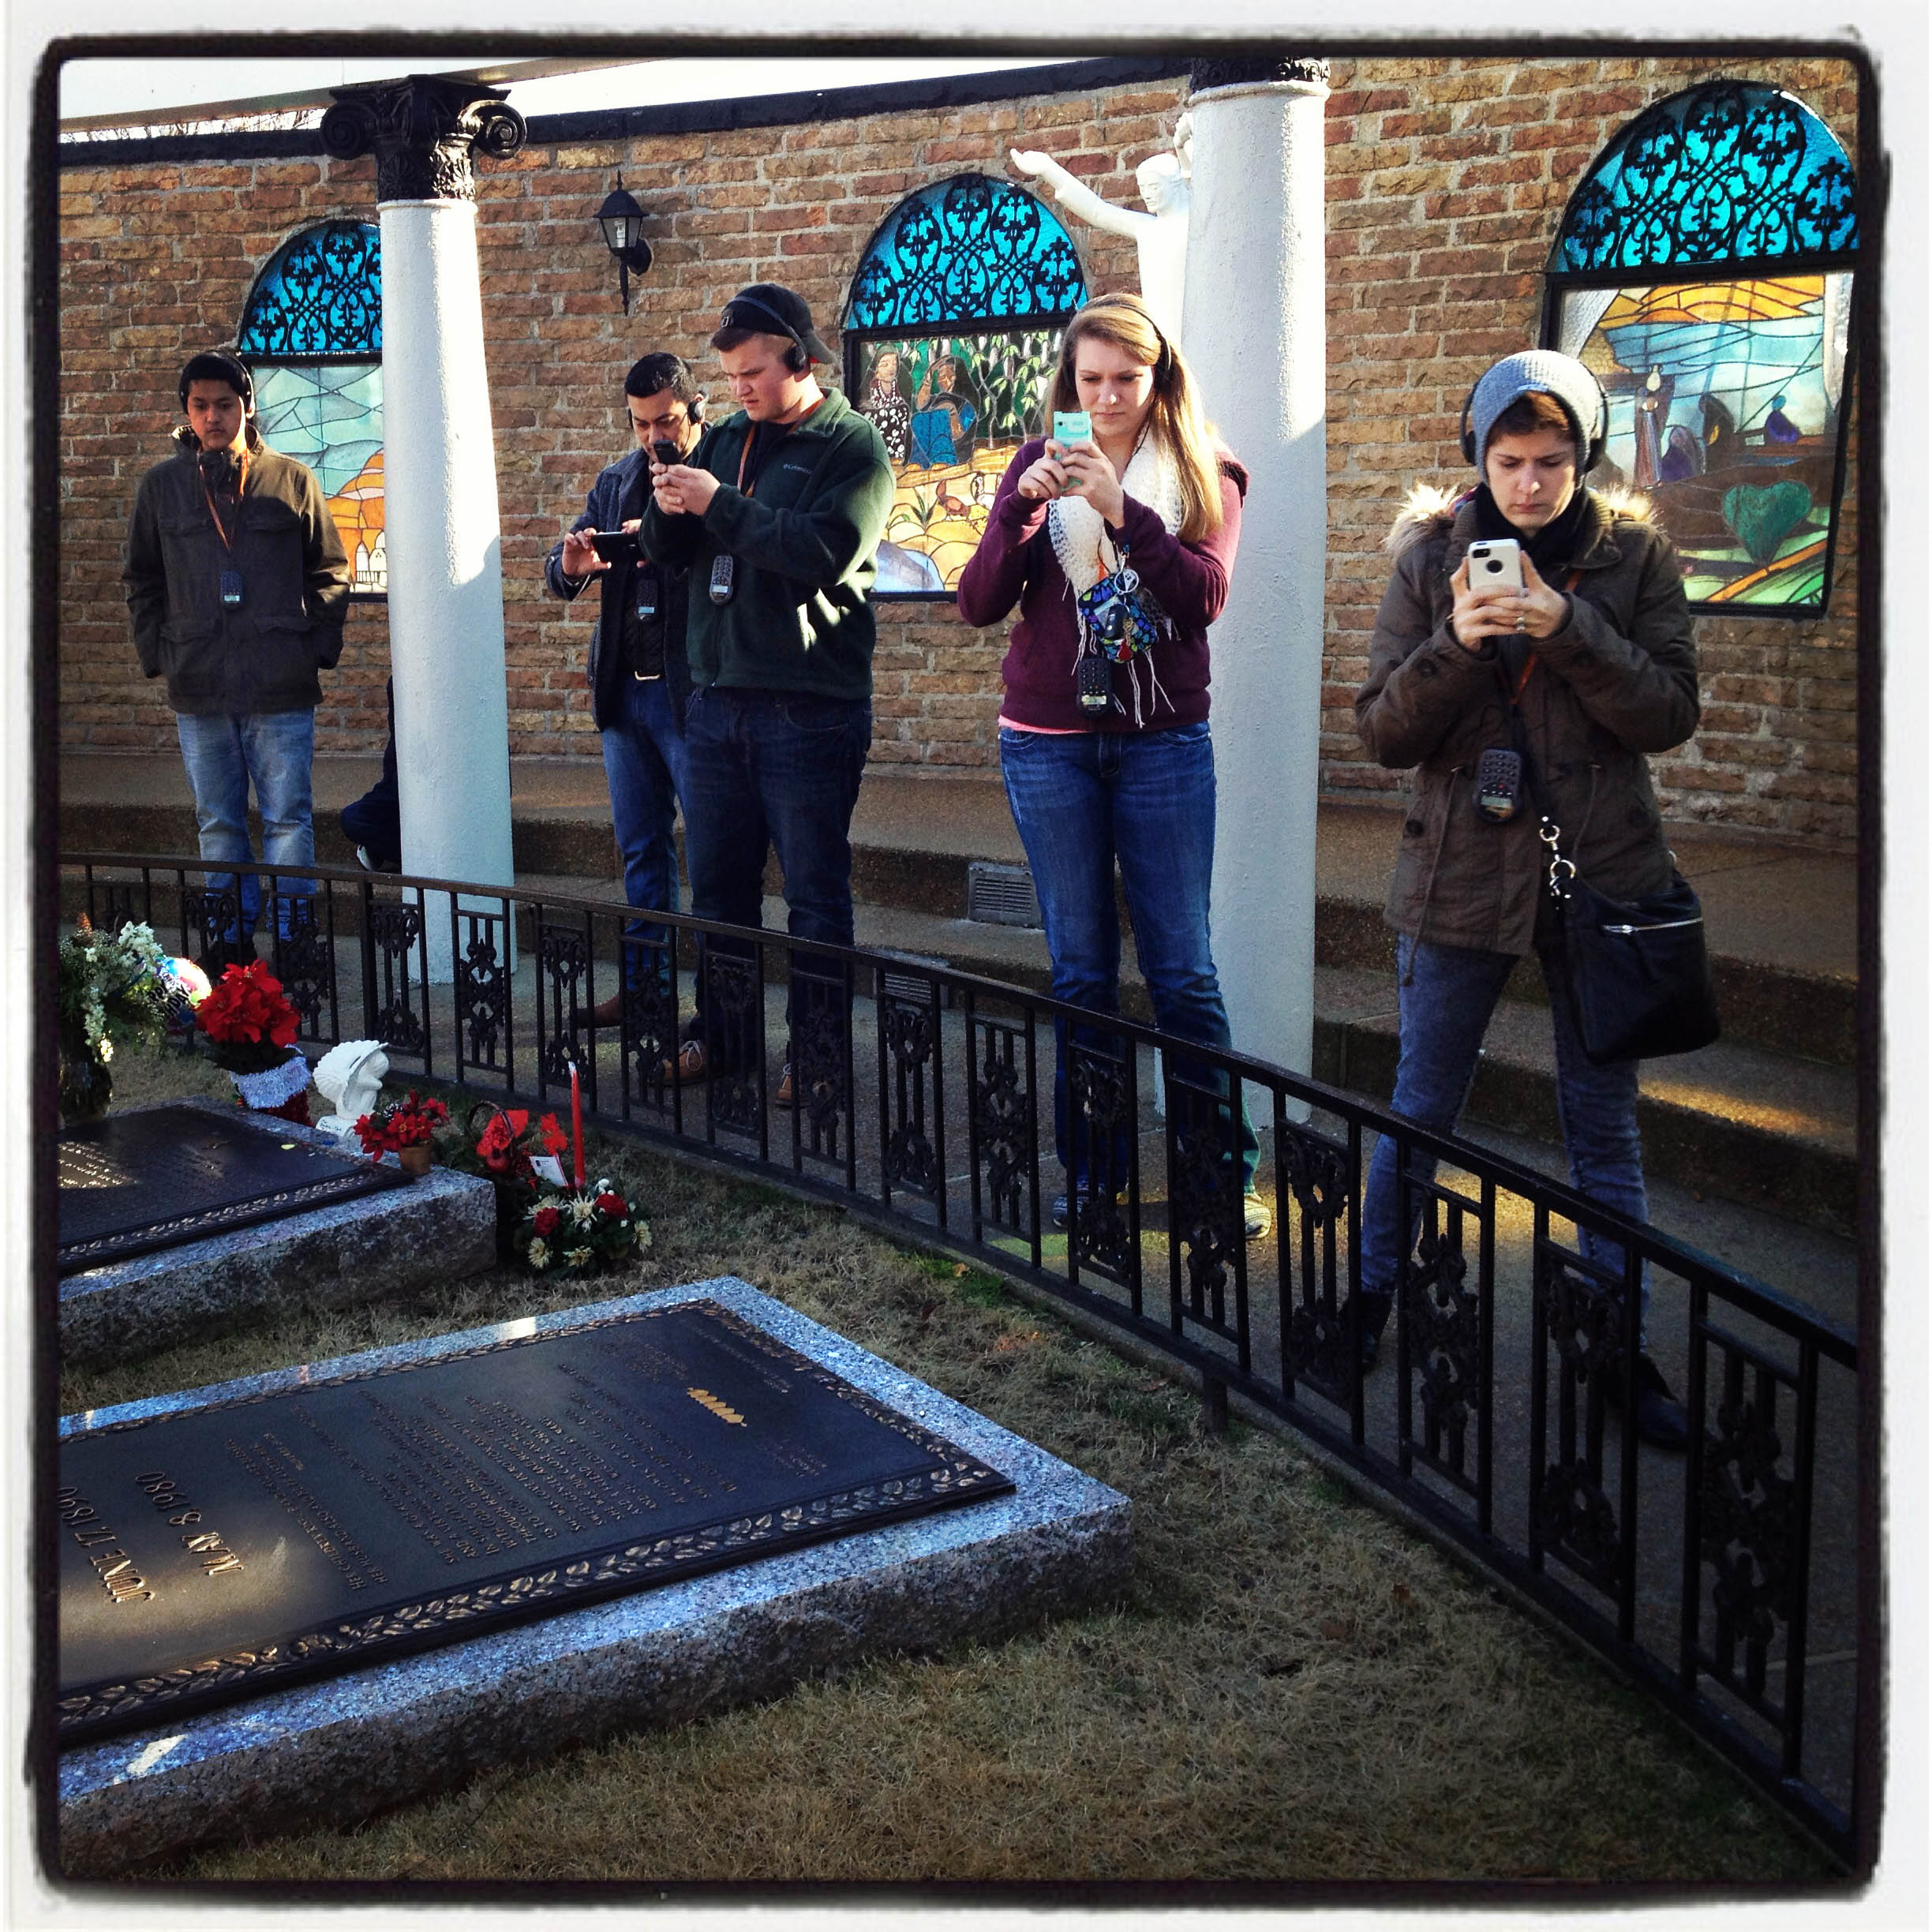 MEMPHIS, TN 01/03/14 Visitors to Graceland take photos of Elvis Presley's gravesite in the Meditation Garden.  CLOE POISSON|cpoisson@courant.com